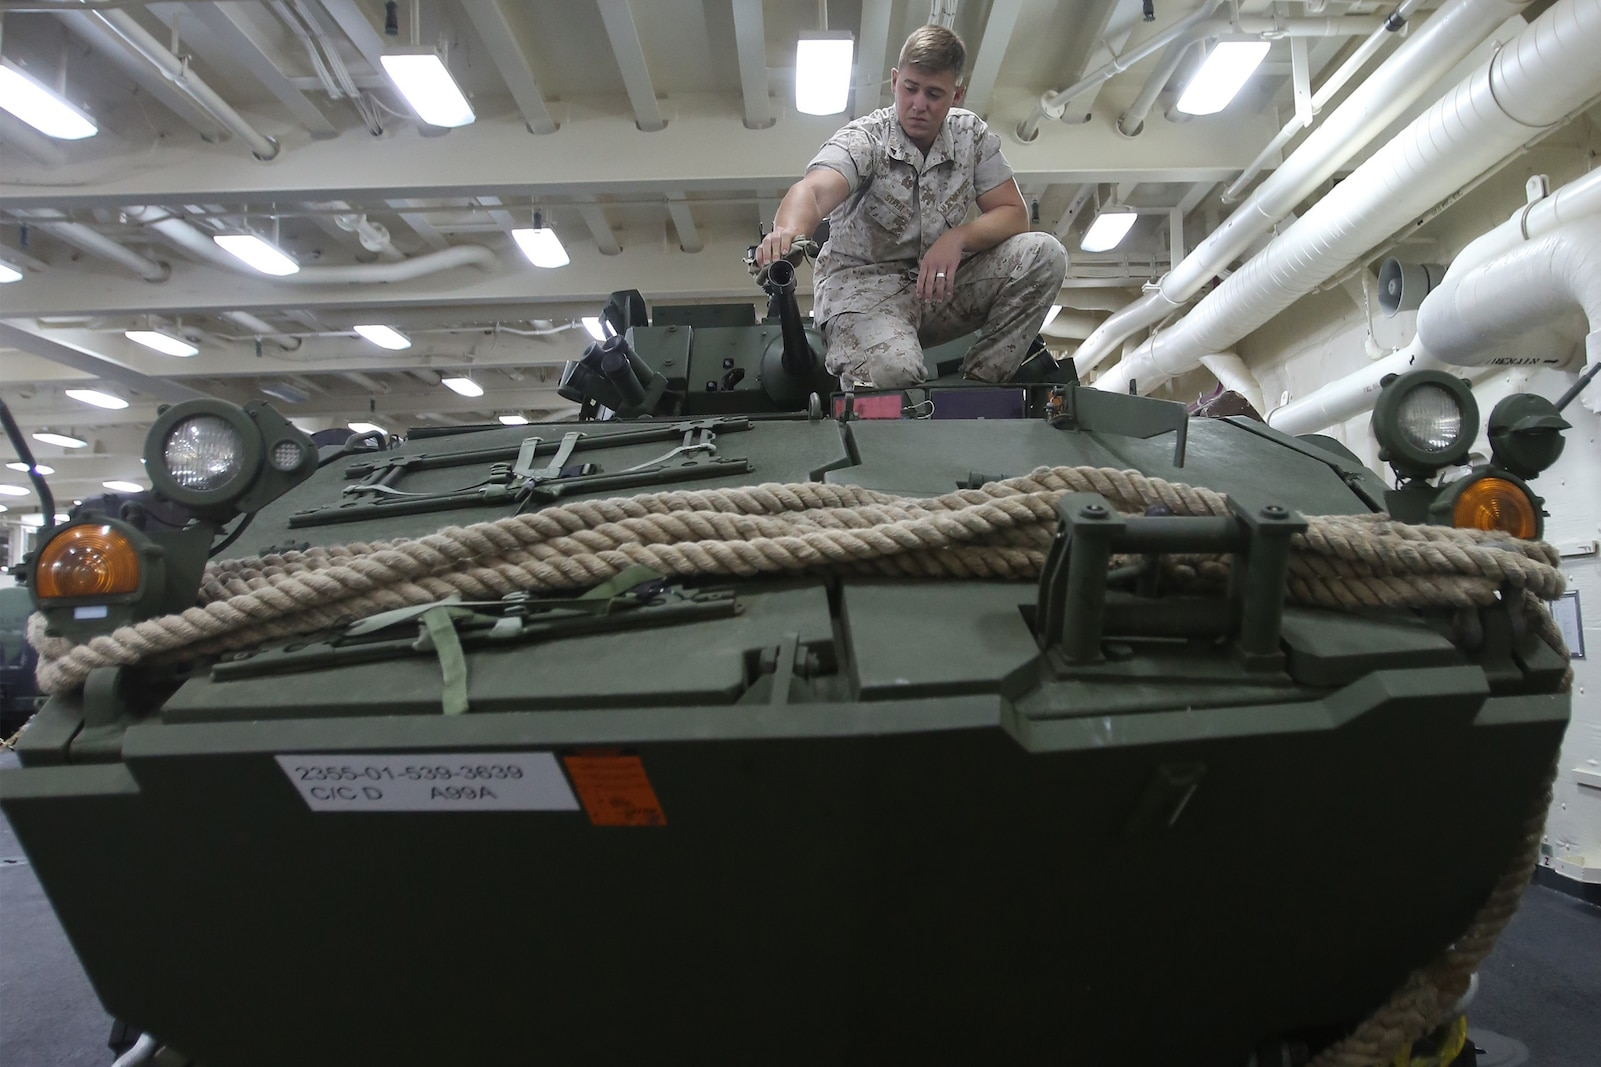 Lance Cpl. Jonathan S. Streit, a light armored vehicle crewman with 1st Light Armored Reconnaissance Battalion, 1st Marine Division, cleans the barrel of a 25mm bushmaster chaingun while part of Special Purpose Marine Air Ground Task Force ASEAN, aboard amphibious transport dock ship USS Anchorage (LPD-23), April 15, 2014. As part of SPMAGTF-ASEAN, 1st LAR showcased their territorial defense capabilities alongside units with 1st MLG on their mission to support the U.S. Secretary of Defense Chuck Hagel, during the Association of Southeast Asian Nations press conference in Hawaii, April 1-4, 2014. SPFMAGTF-ASEAN conducted further training at sea starting April 7, 2014. Streit is from Montrose, Colorado. (U.S. Marine Corps photo courtesy of Lance Cpl. Shaltiel Dominguez/ Released)